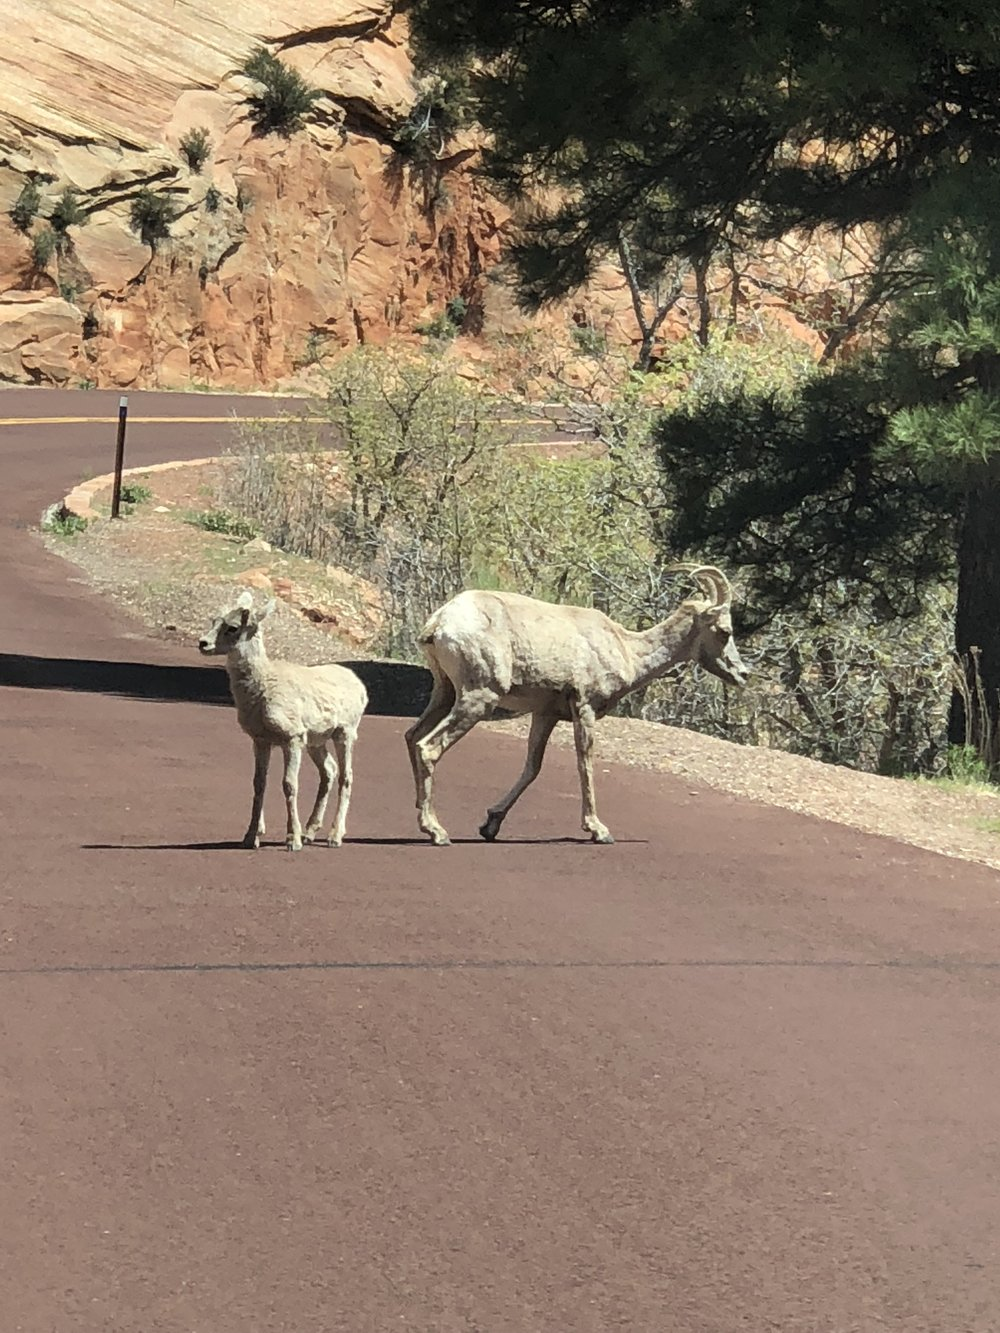 We found some mountain goats driving through Zion!